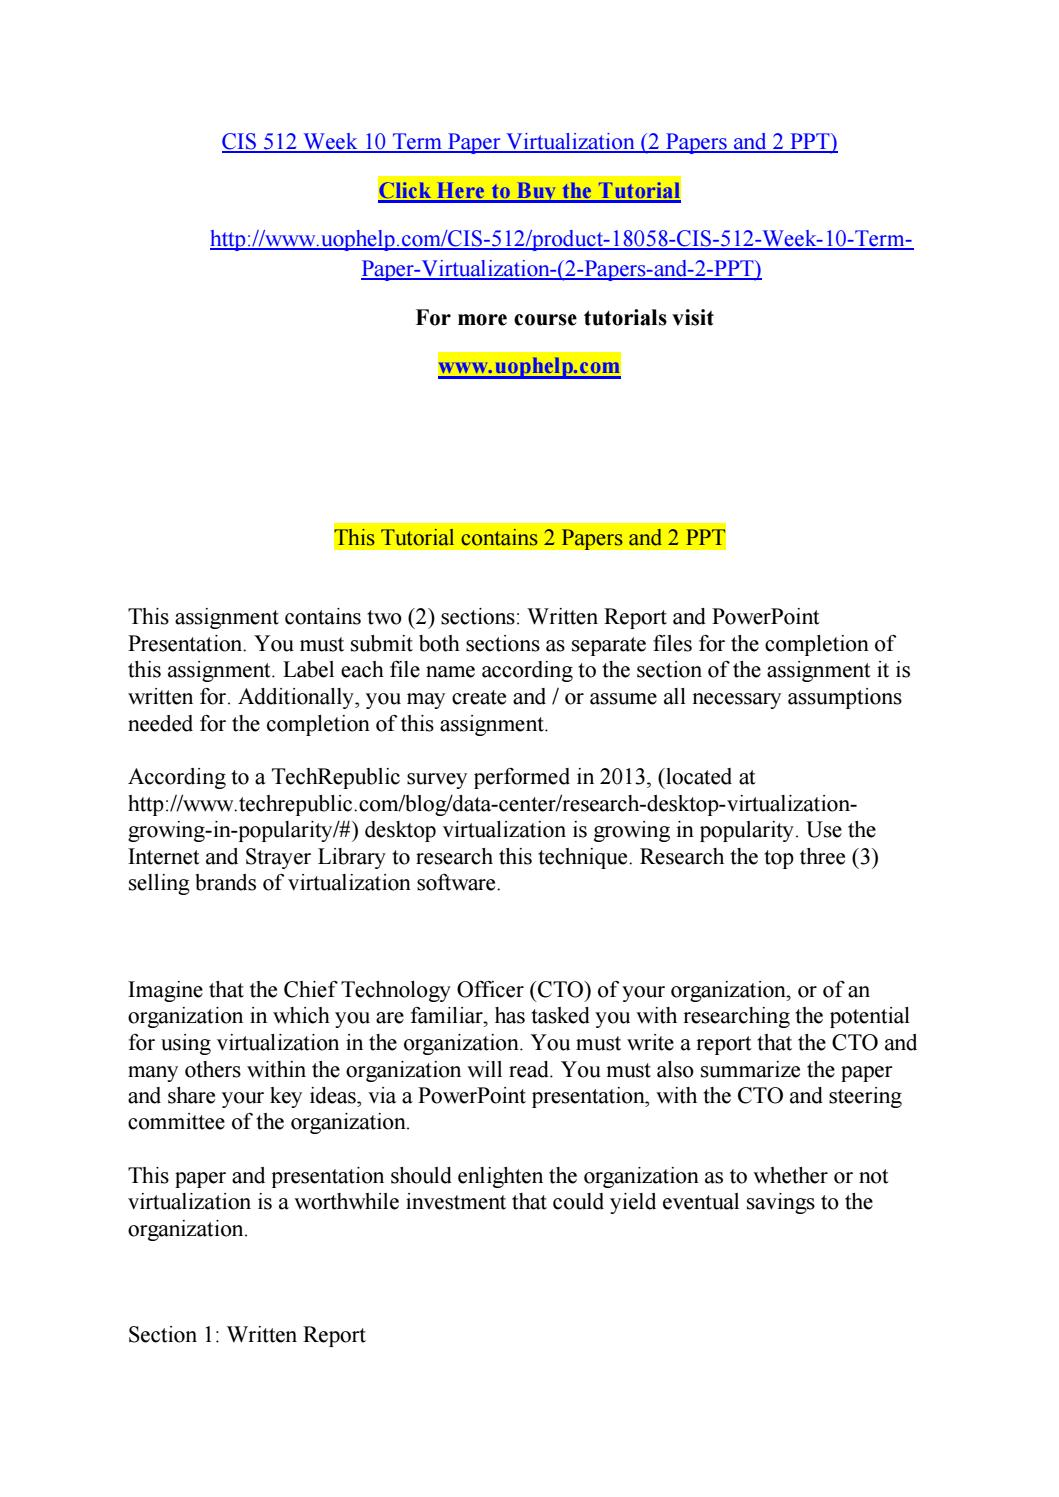 005 How To Read Research Papers Ppt Paper Page 1 Fascinating Full